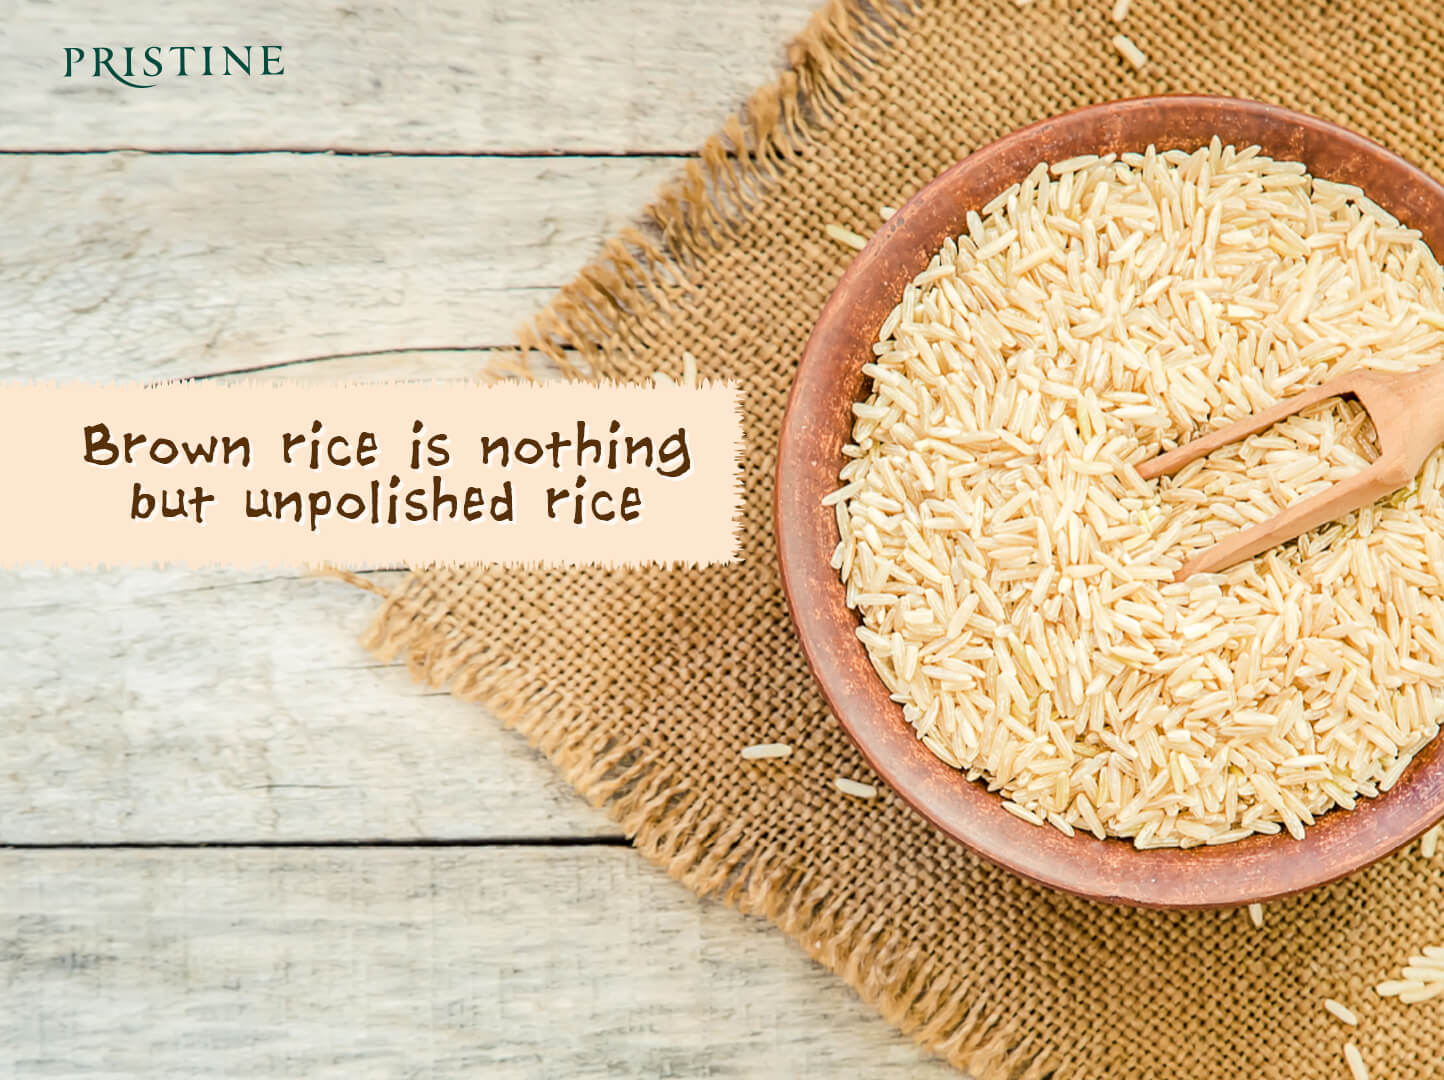 Why you should include unpolished rice in your diet